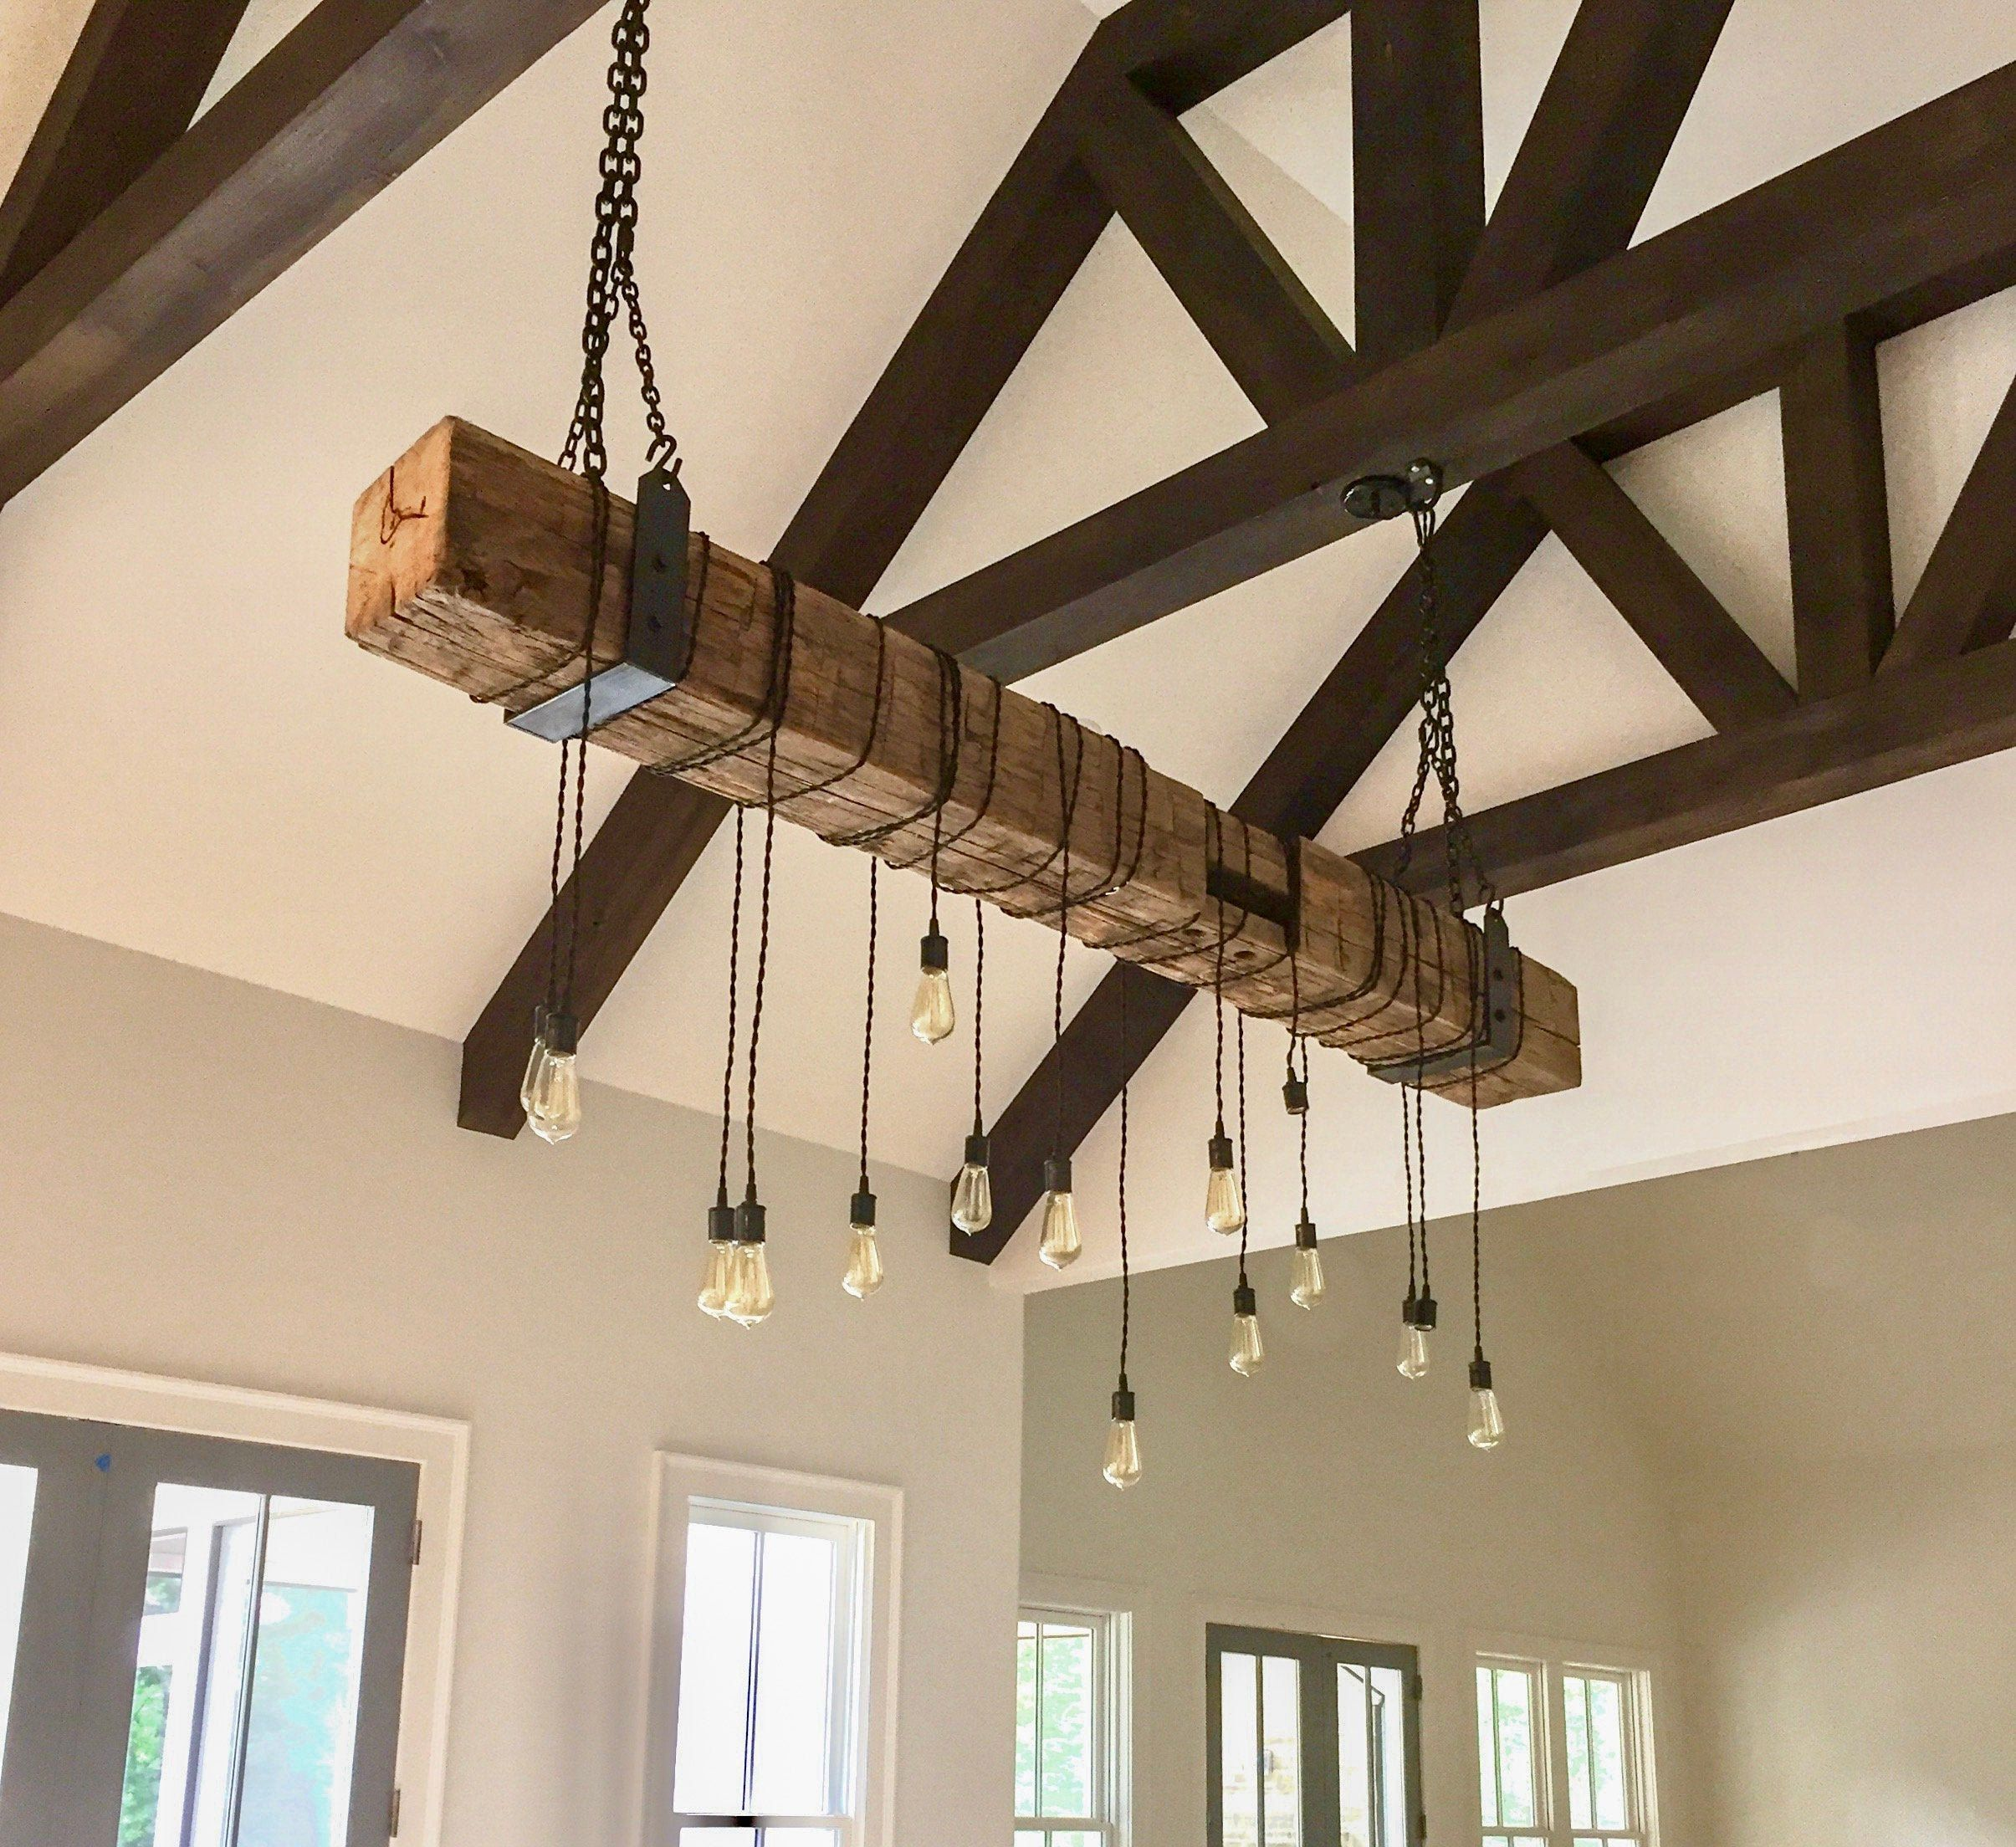 Rustic Chandelier Light Fixture Reclaimed Wood Beam 72 Long With Metal Hanging Brackets And Wrapped Led Edison Lights In 2020 Rustic Chandelier Lighting Contemporary Light Fixtures Rustic Chandelier